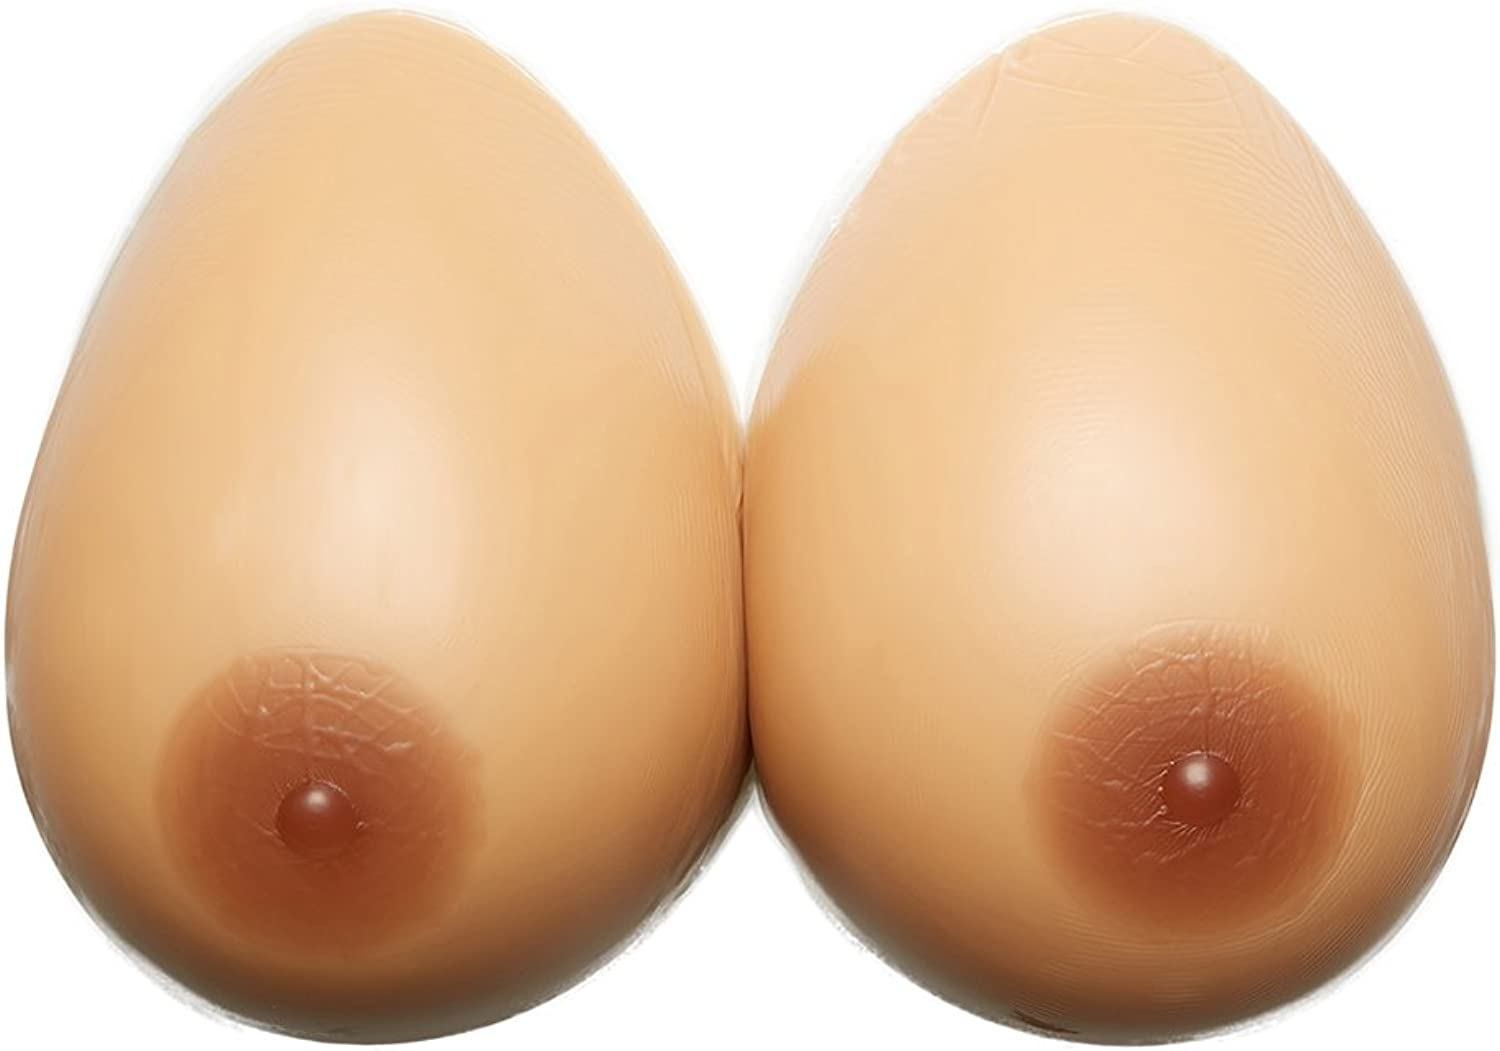 Alian Silicone Prosthesis Breast Premium Silicone Breast Forms One Pair